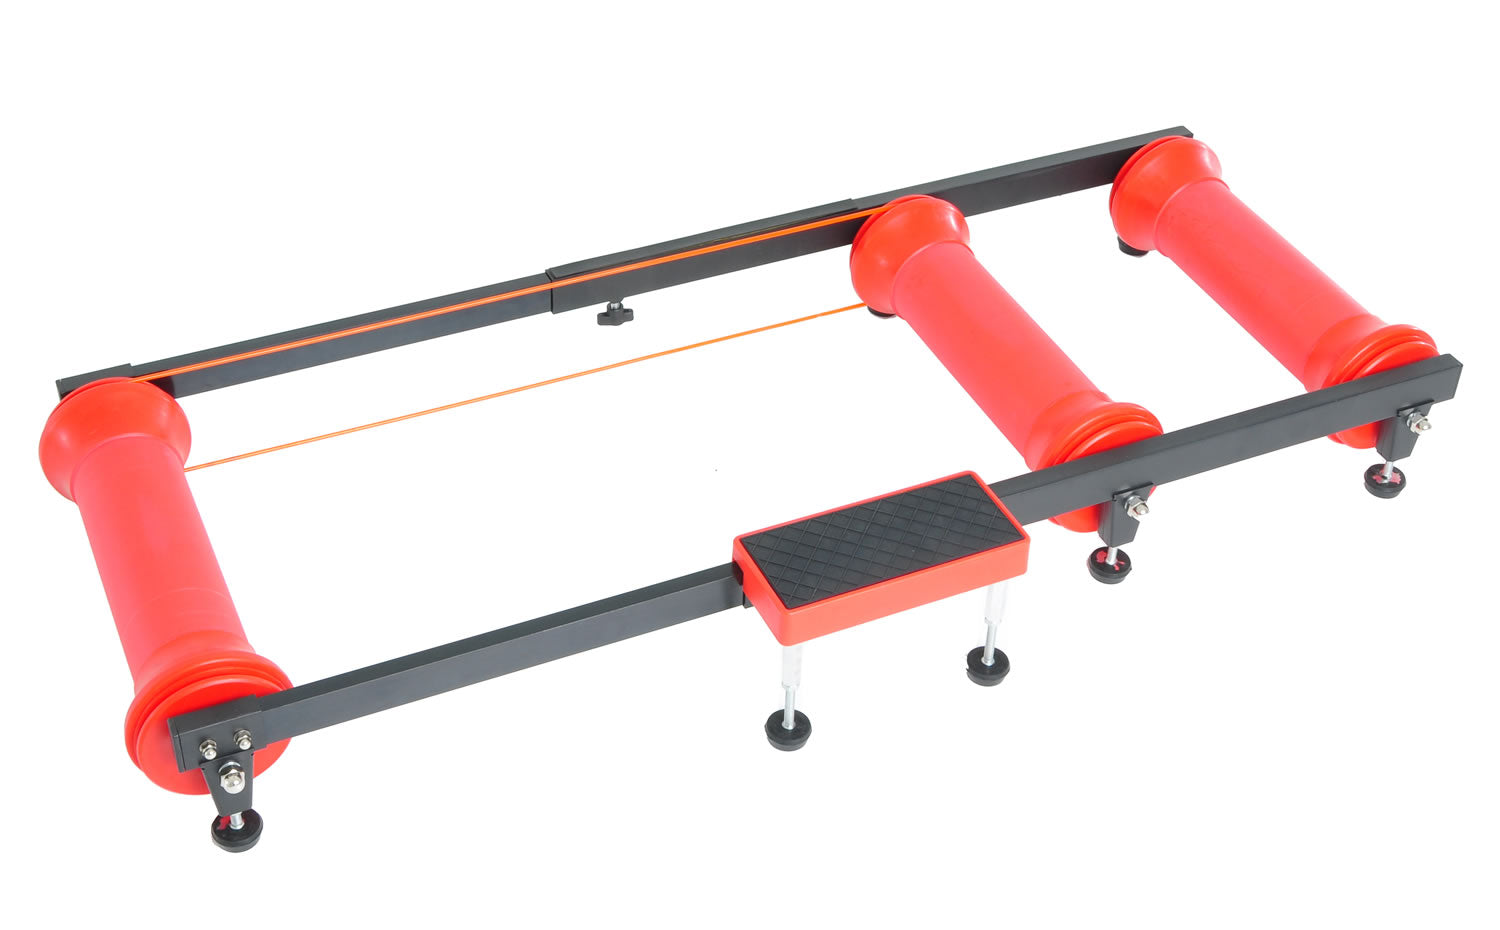 products/530-TRAINER-ROLLER__01_jpg.jpg